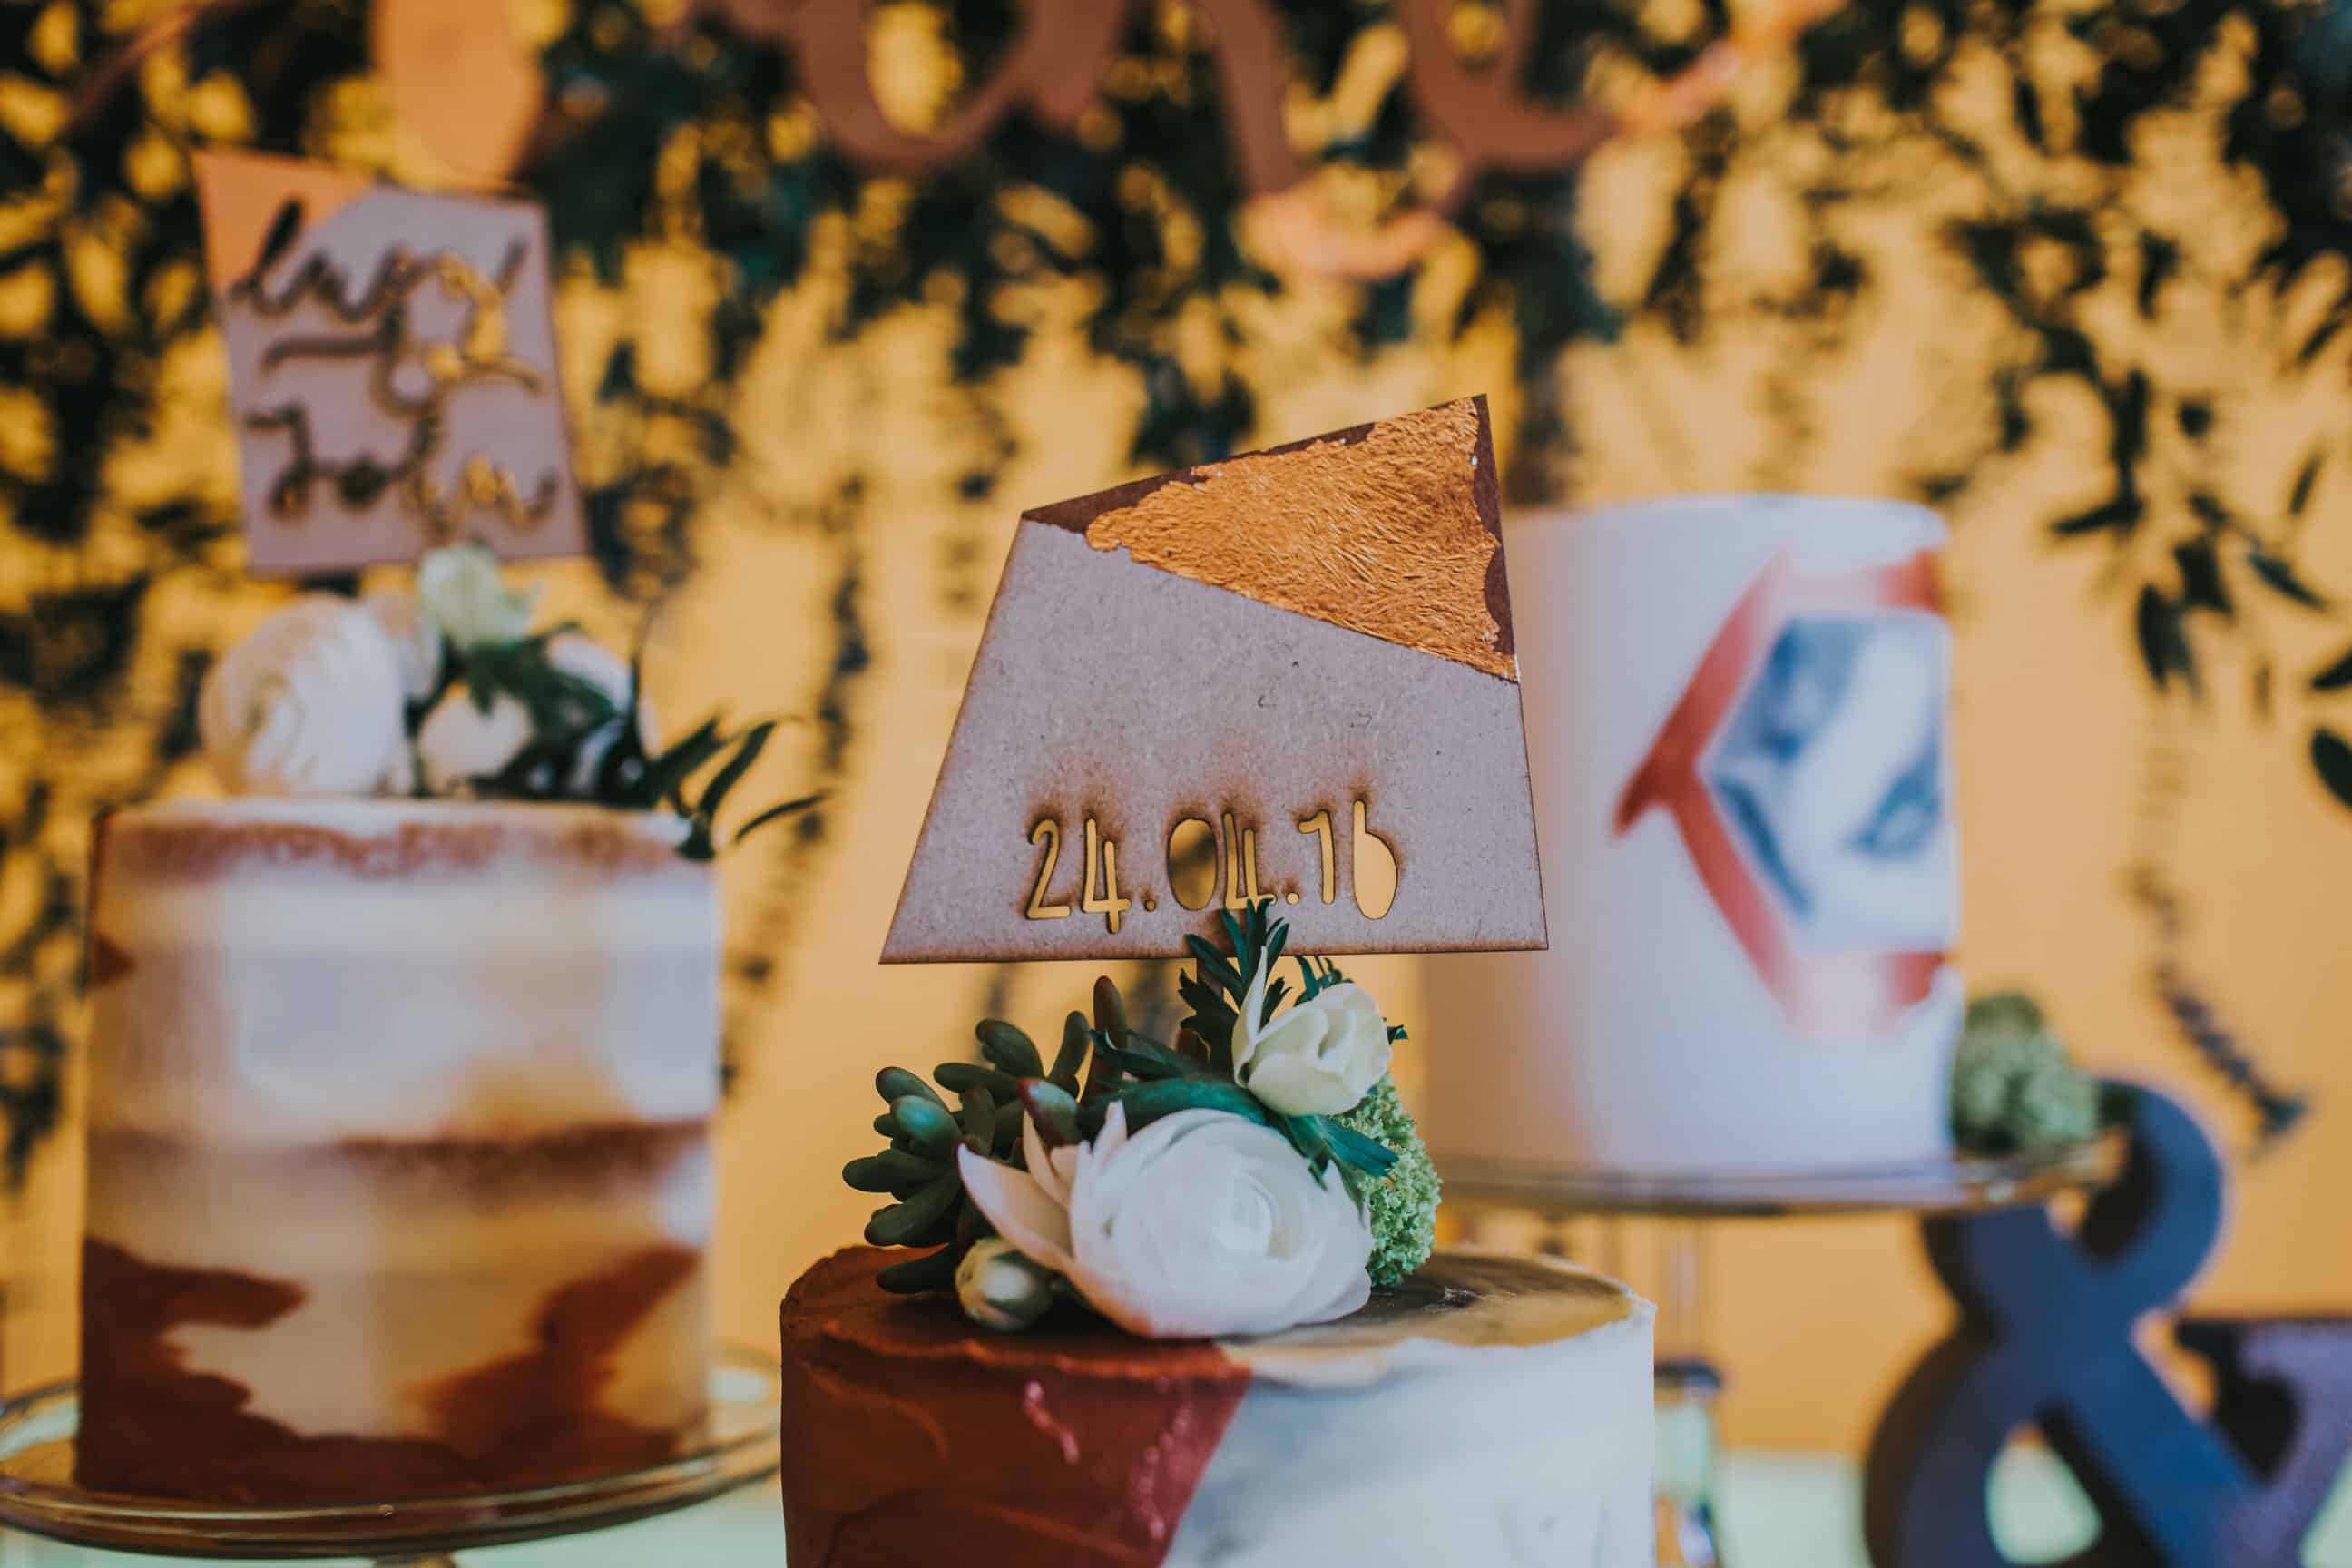 Copper Cake display by Yummy Little Cakes- by Sami Tipi captured by Ed Brown Photography